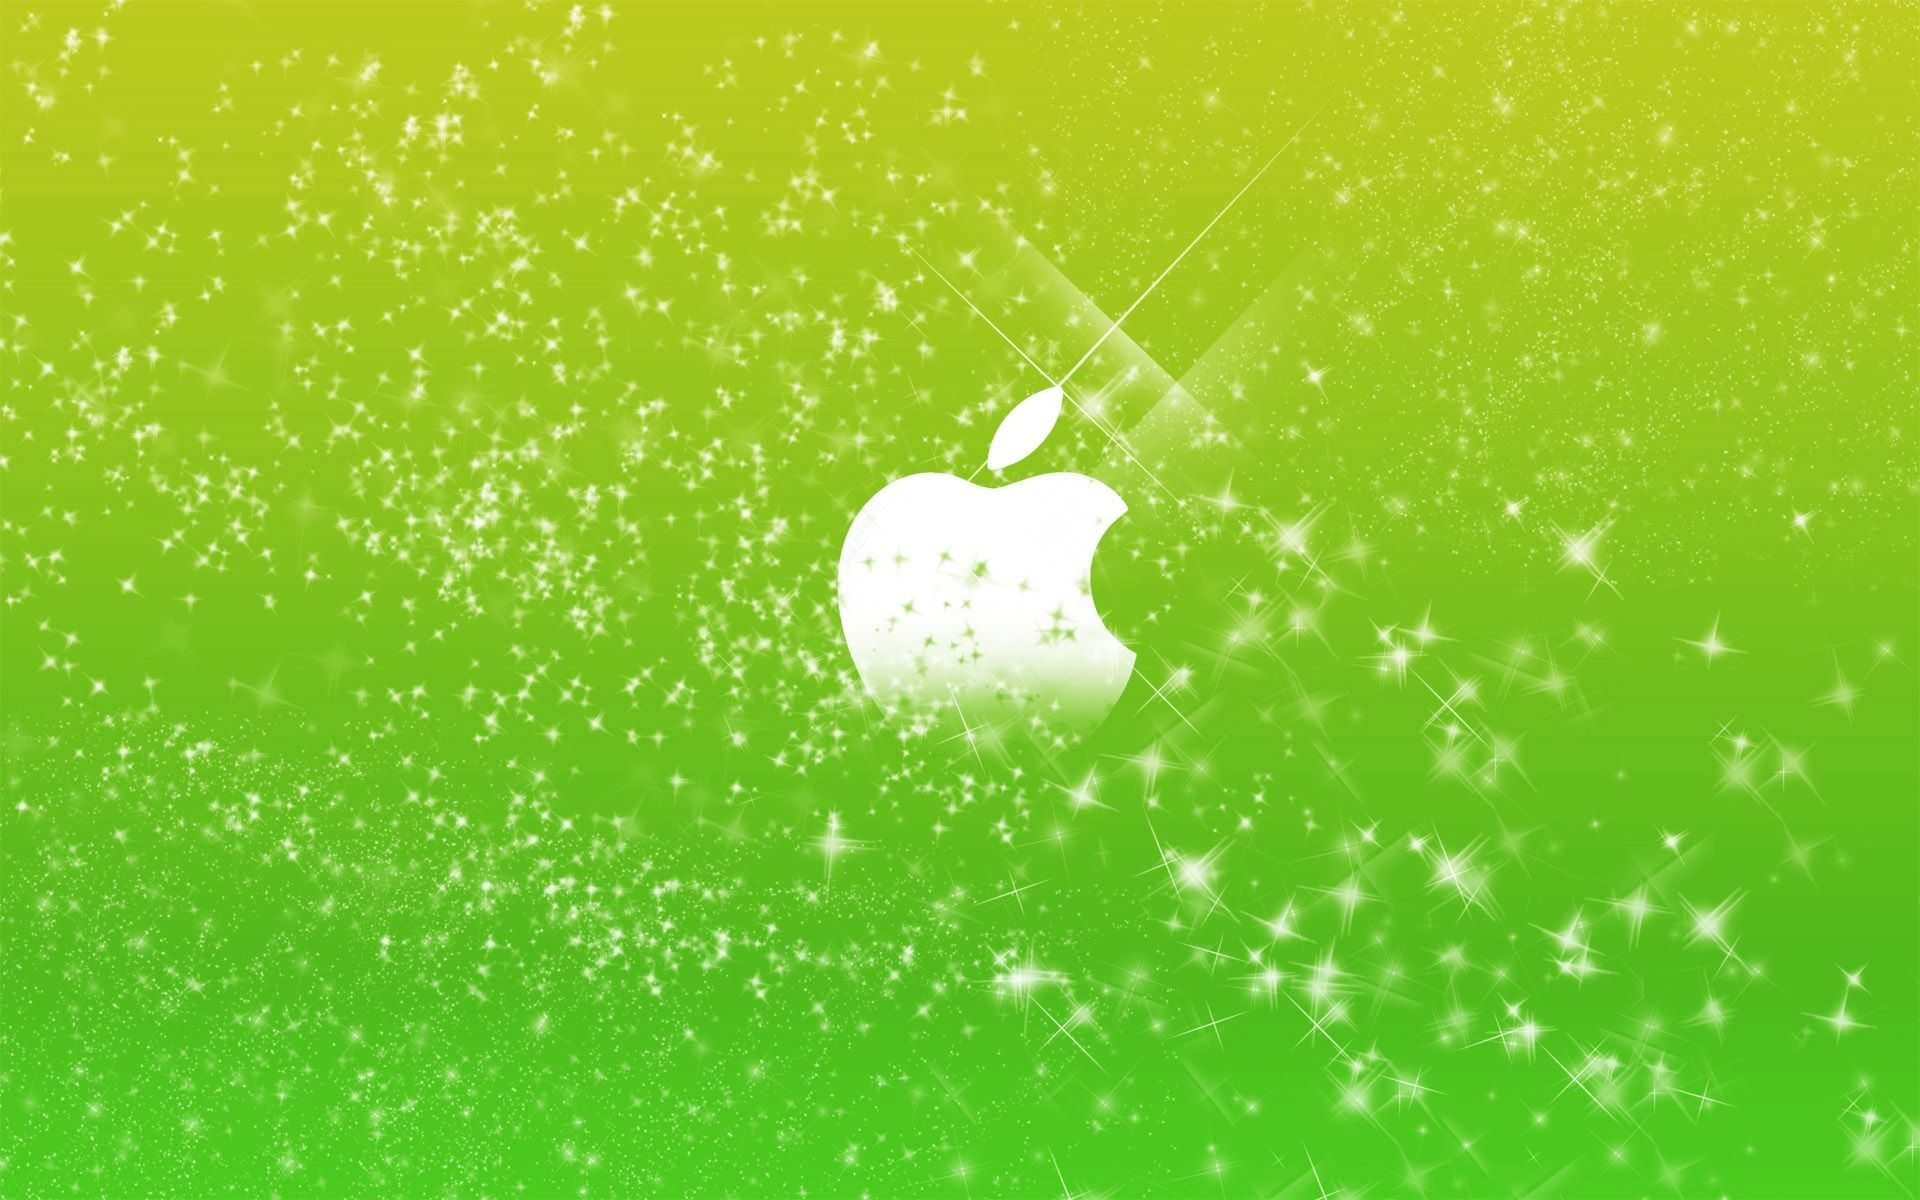 green glitter background wallpaper - photo #17